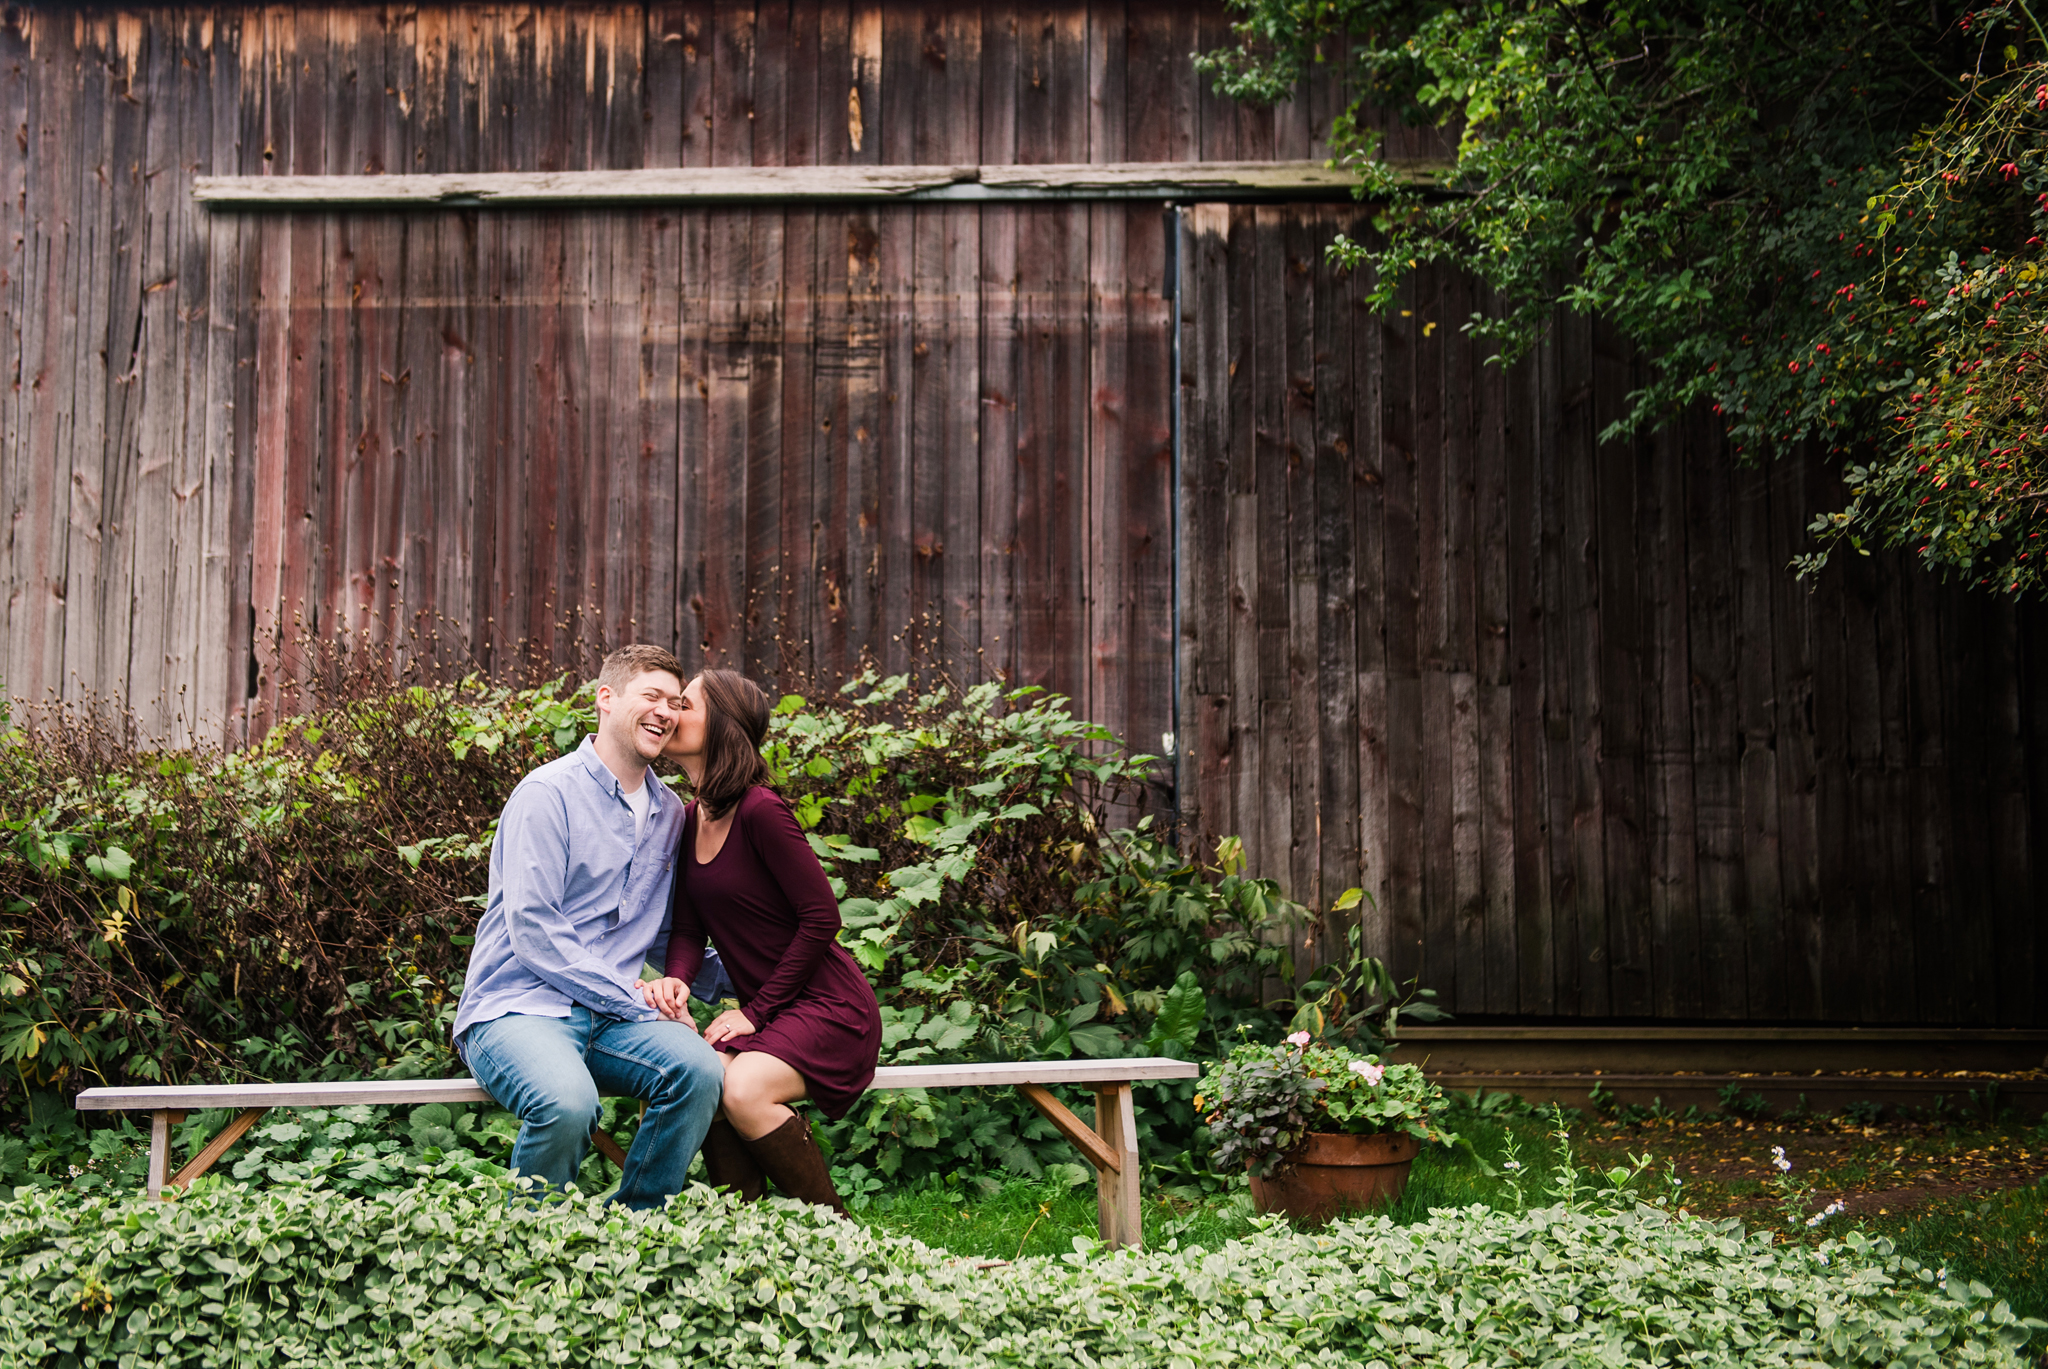 Hurd_Orchards_Rochester_Engagement_Session_JILL_STUDIO_Rochester_NY_Photographer_DSC_2108.jpg